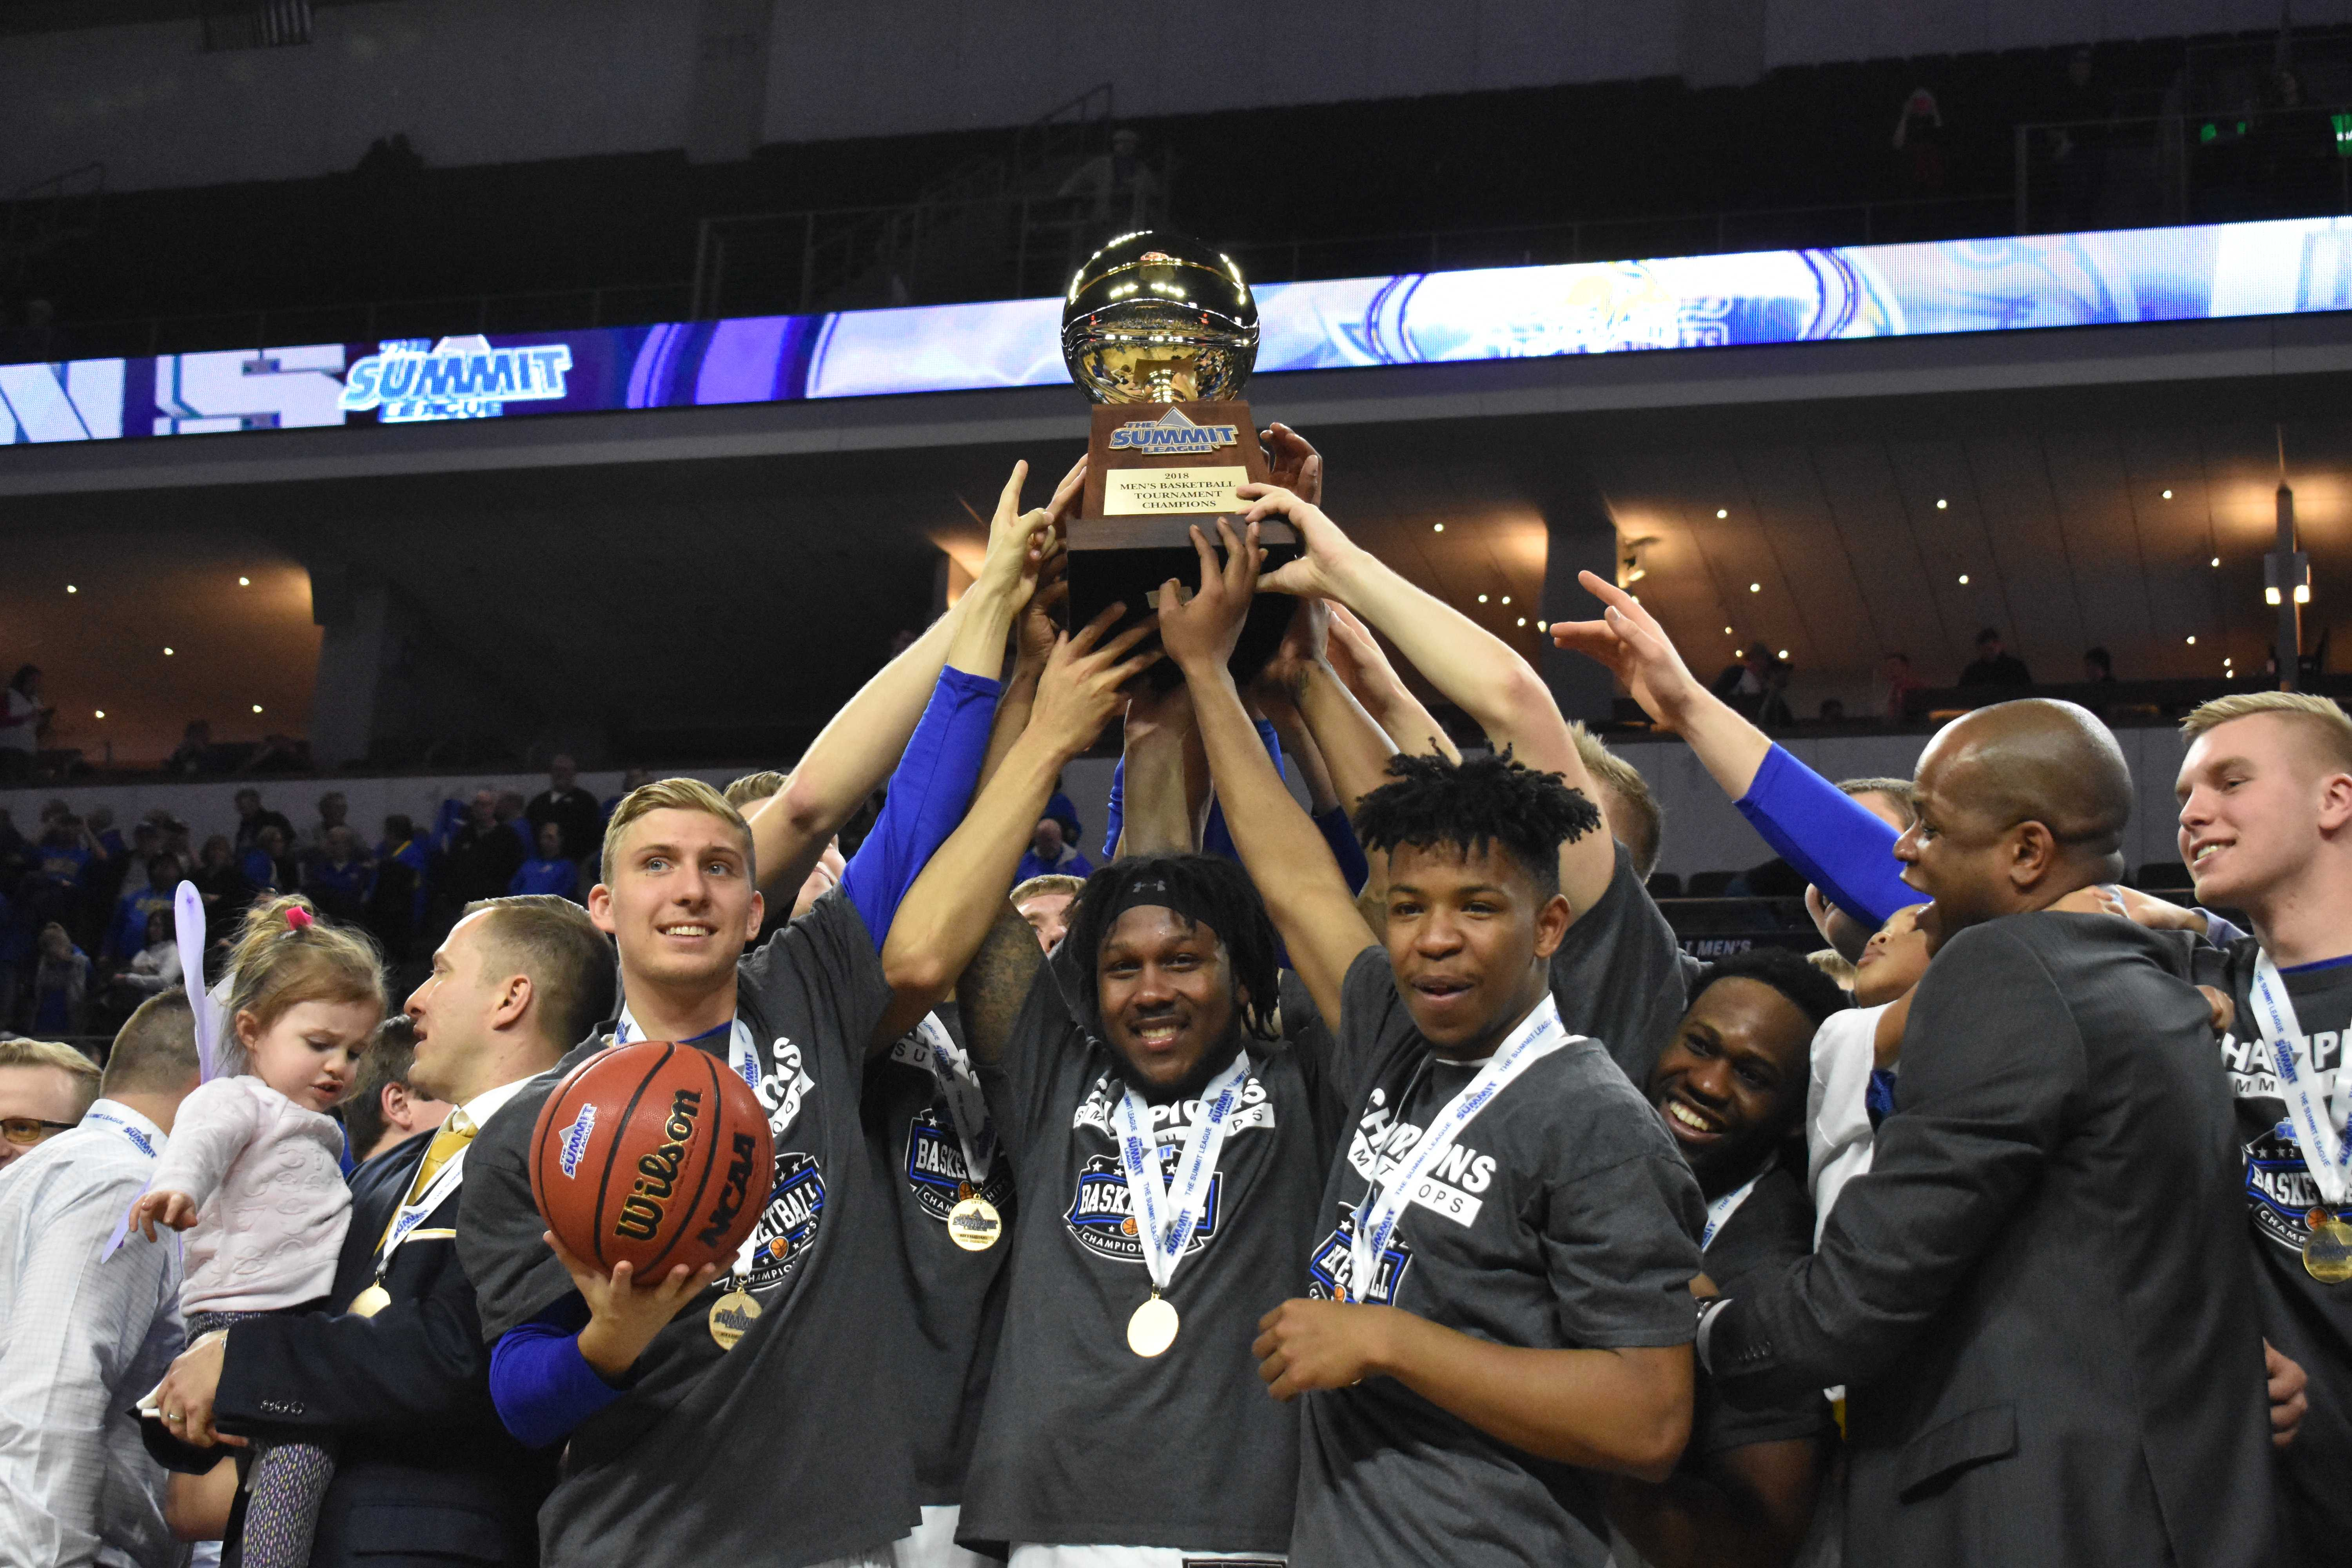 ABBY FULLENKAMP Beau Brown, David Jenkins Jr. and Brandon Key hold the Summit League Championship trophy on March 6. SDSU defeated USD 97-87.